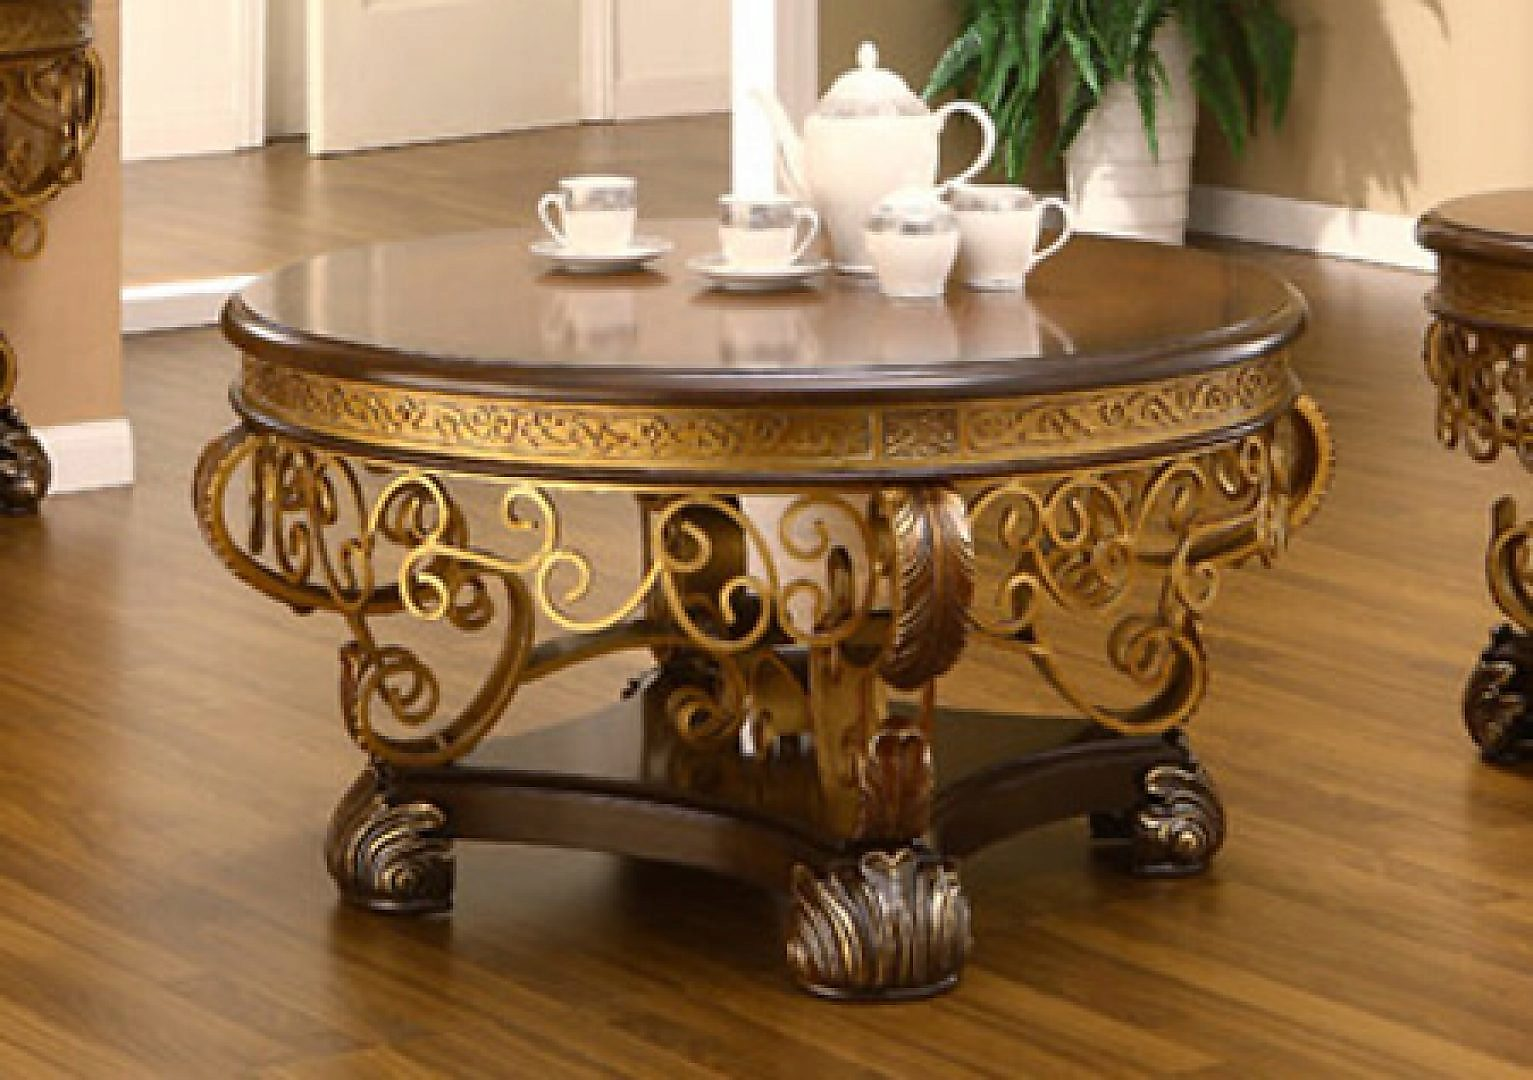 Traditional Royal HD-2112 Gilded Coffee Table in Brown by Homey Design